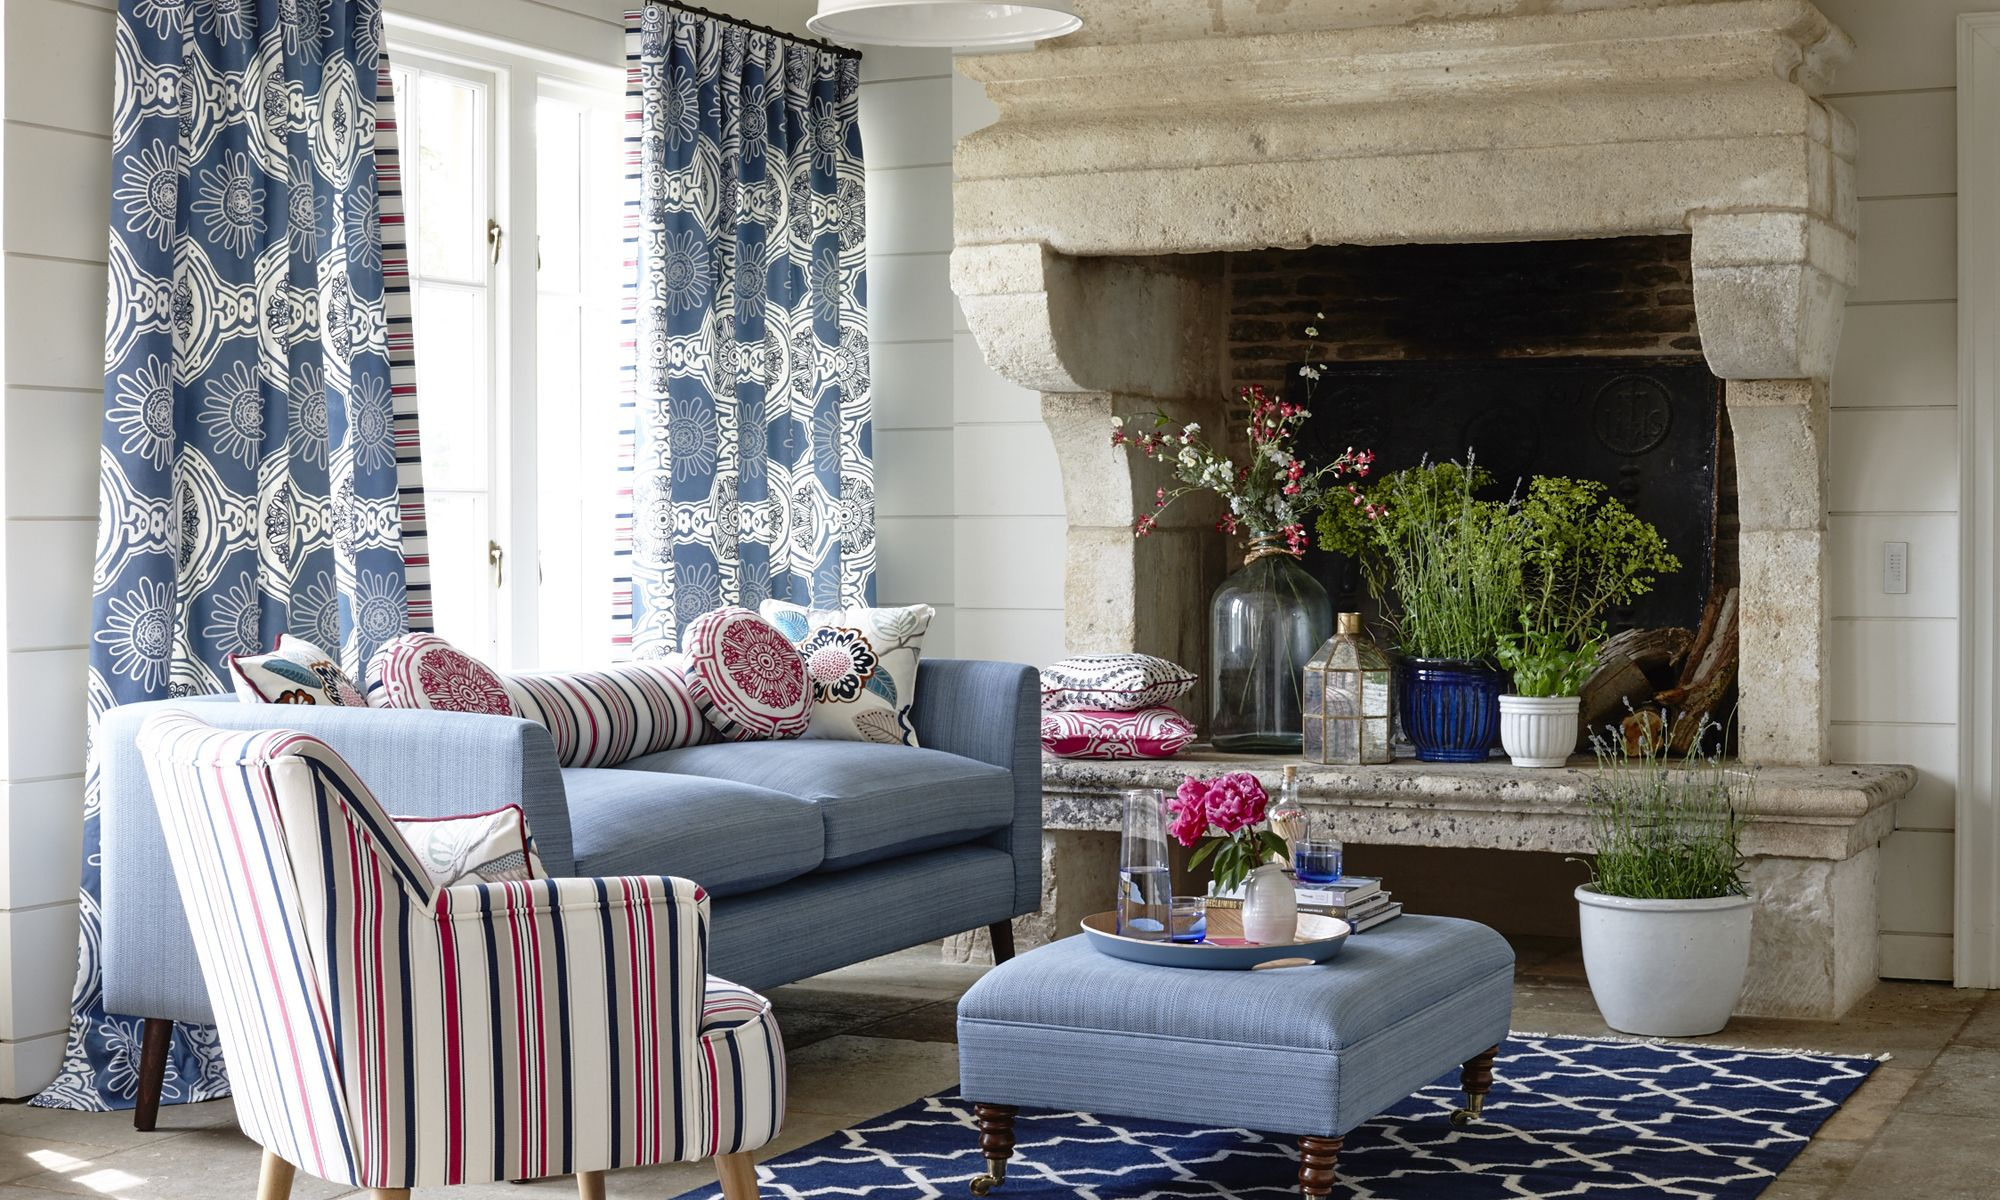 Clarke and Clarke Cote d'Azure curtains from Fabric Gallery and Interiors